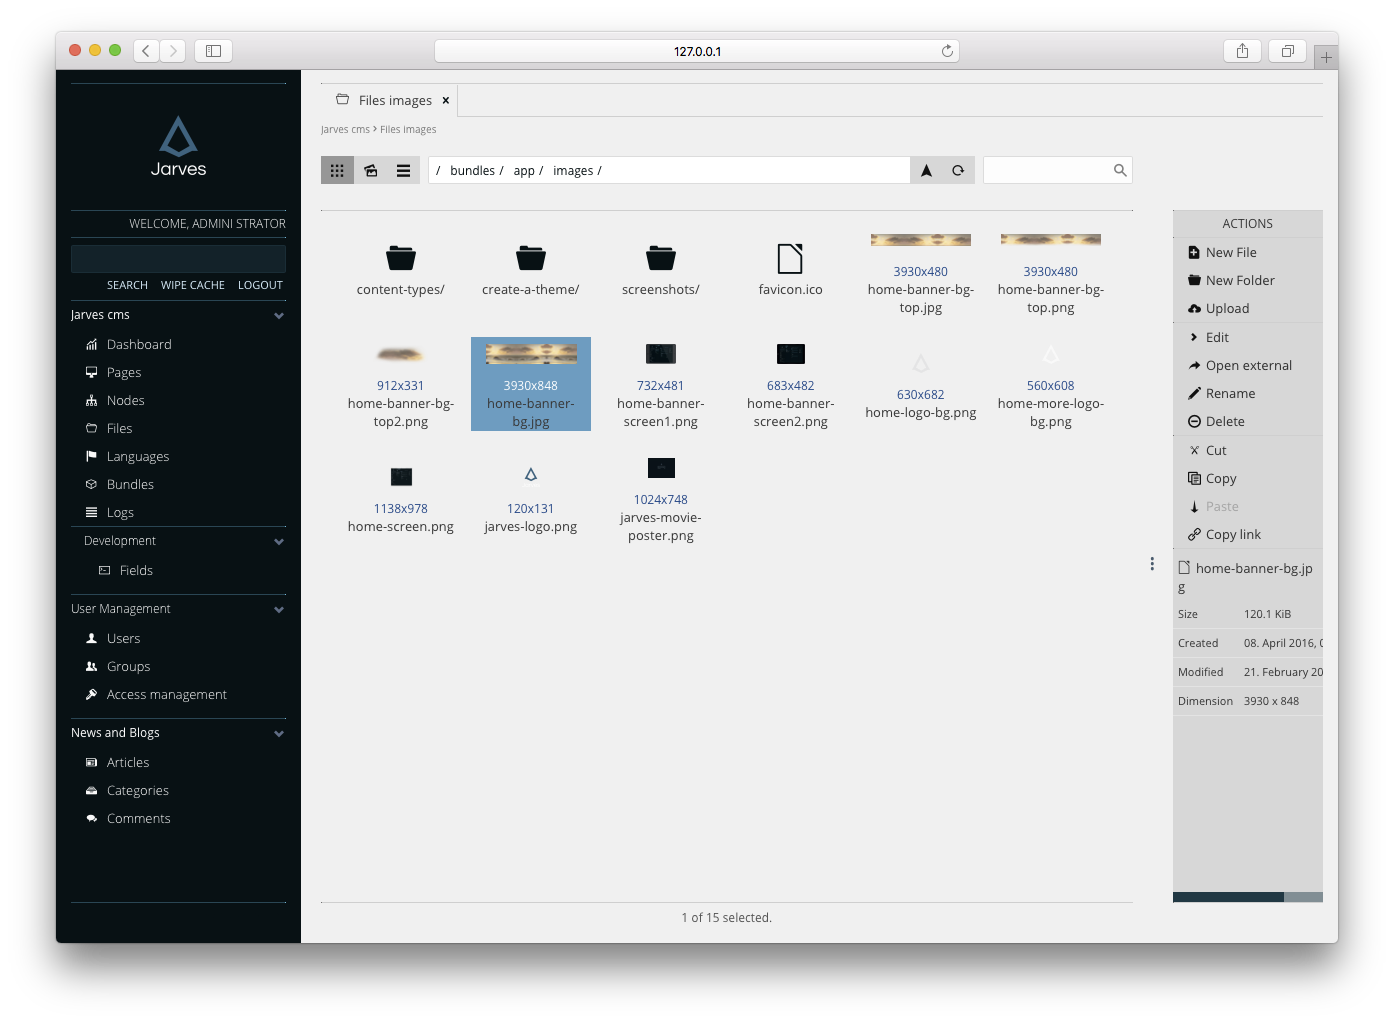 Administration File manager